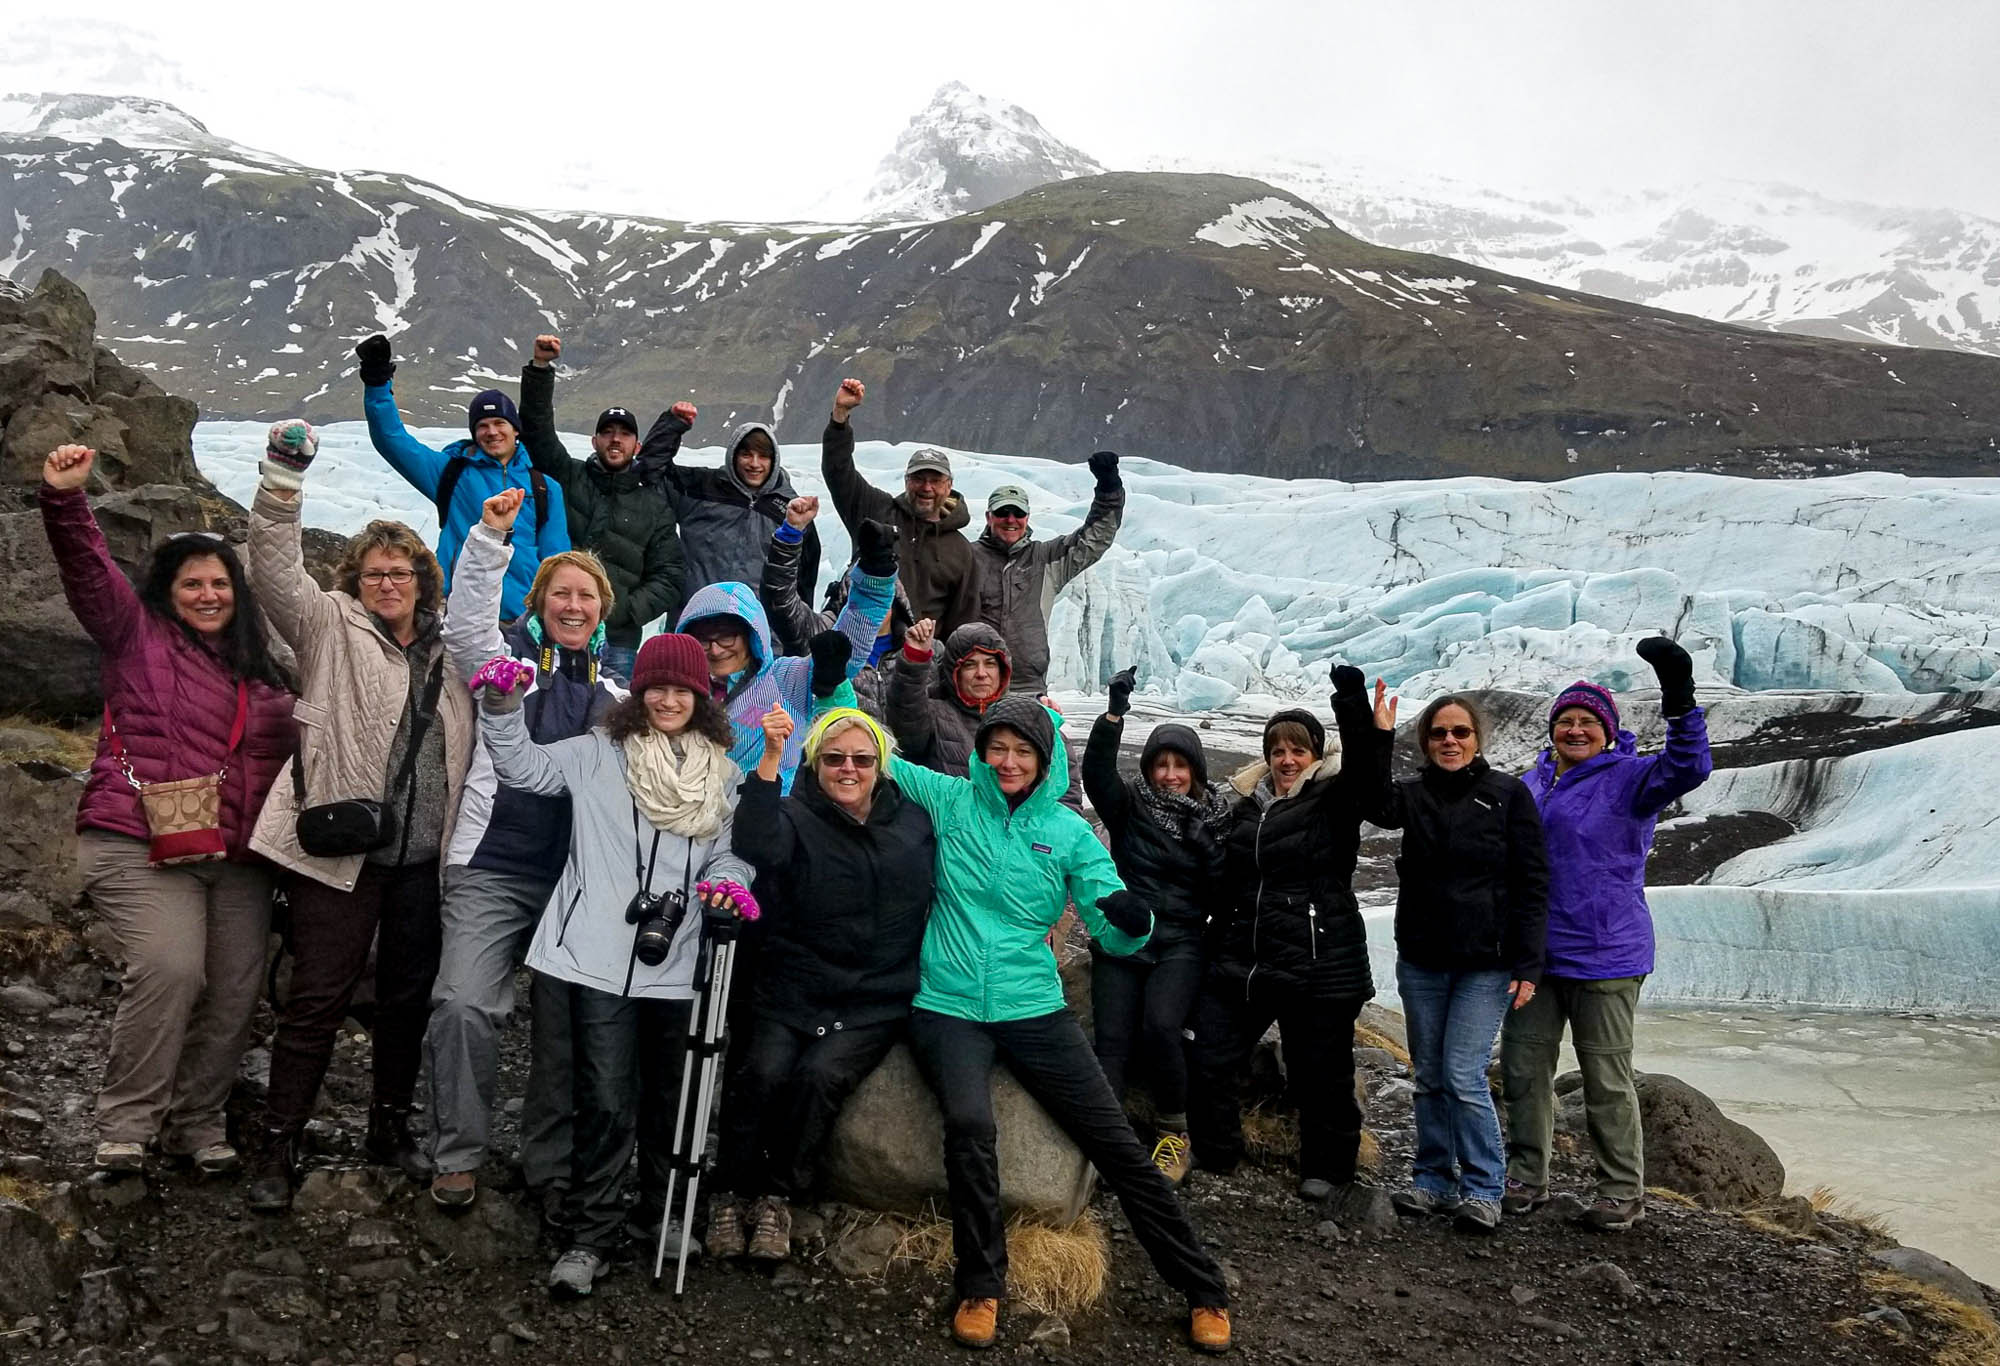 Tour group standing by a glacier in iceland cheering